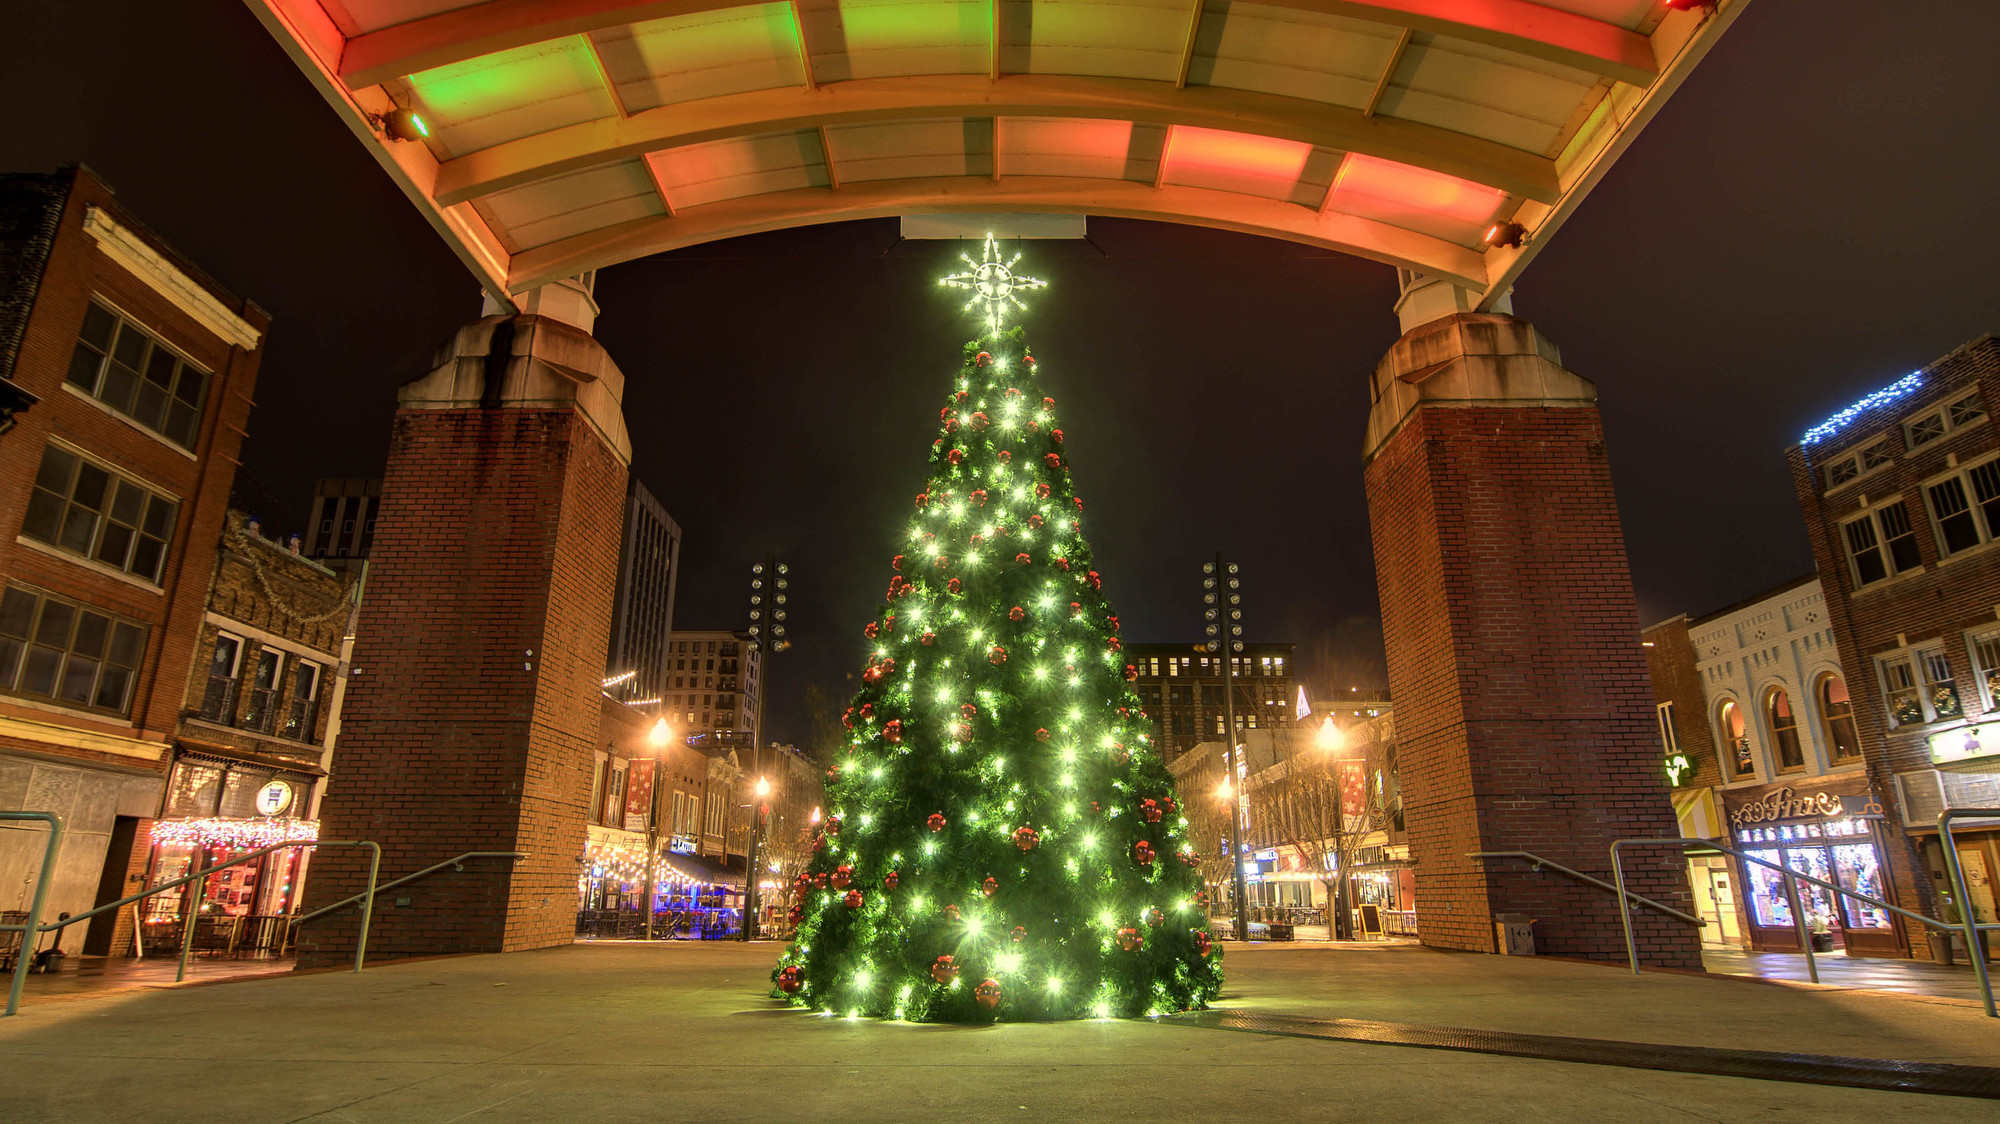 Downtown Knoxville Christmas Parade 2021 Travel Guide To The Christmas Holiday Season In Knoxville Tn Road Trips Coffee Travel Blog